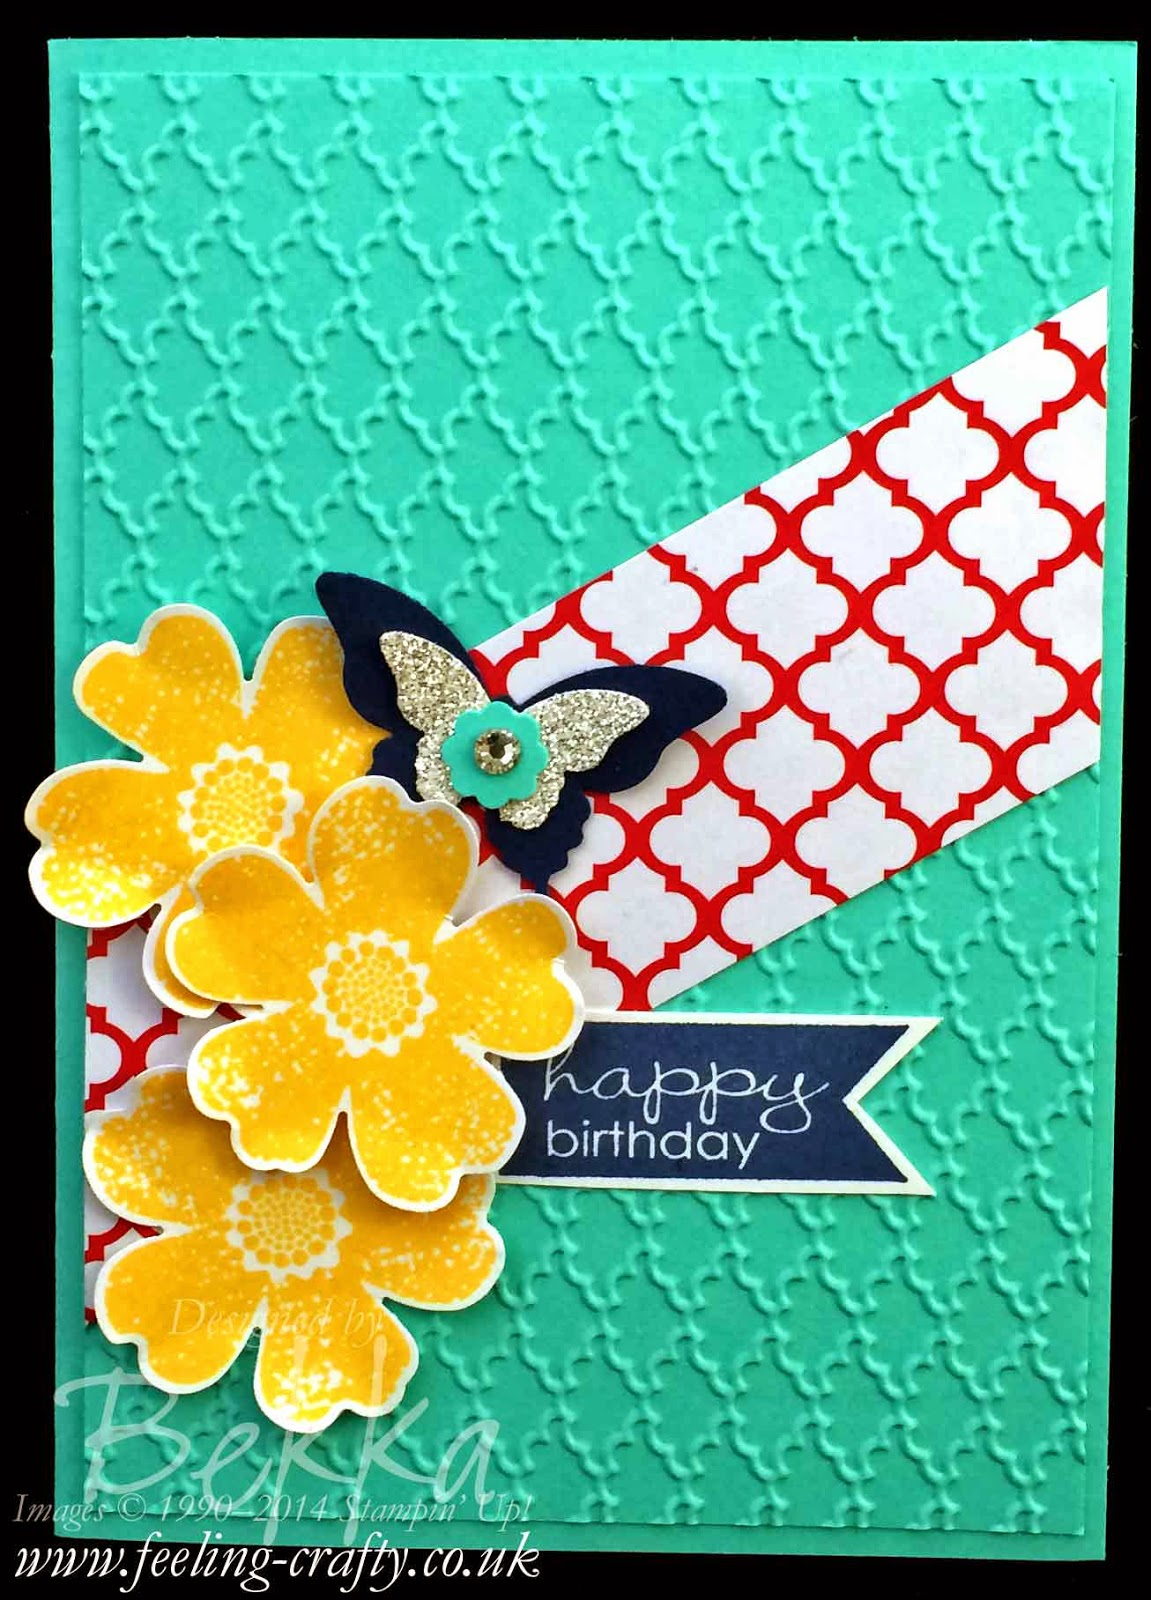 Birthday Flowers and Butterflies Card using Stampin' Up! Supplies - if you are in the UK get them here